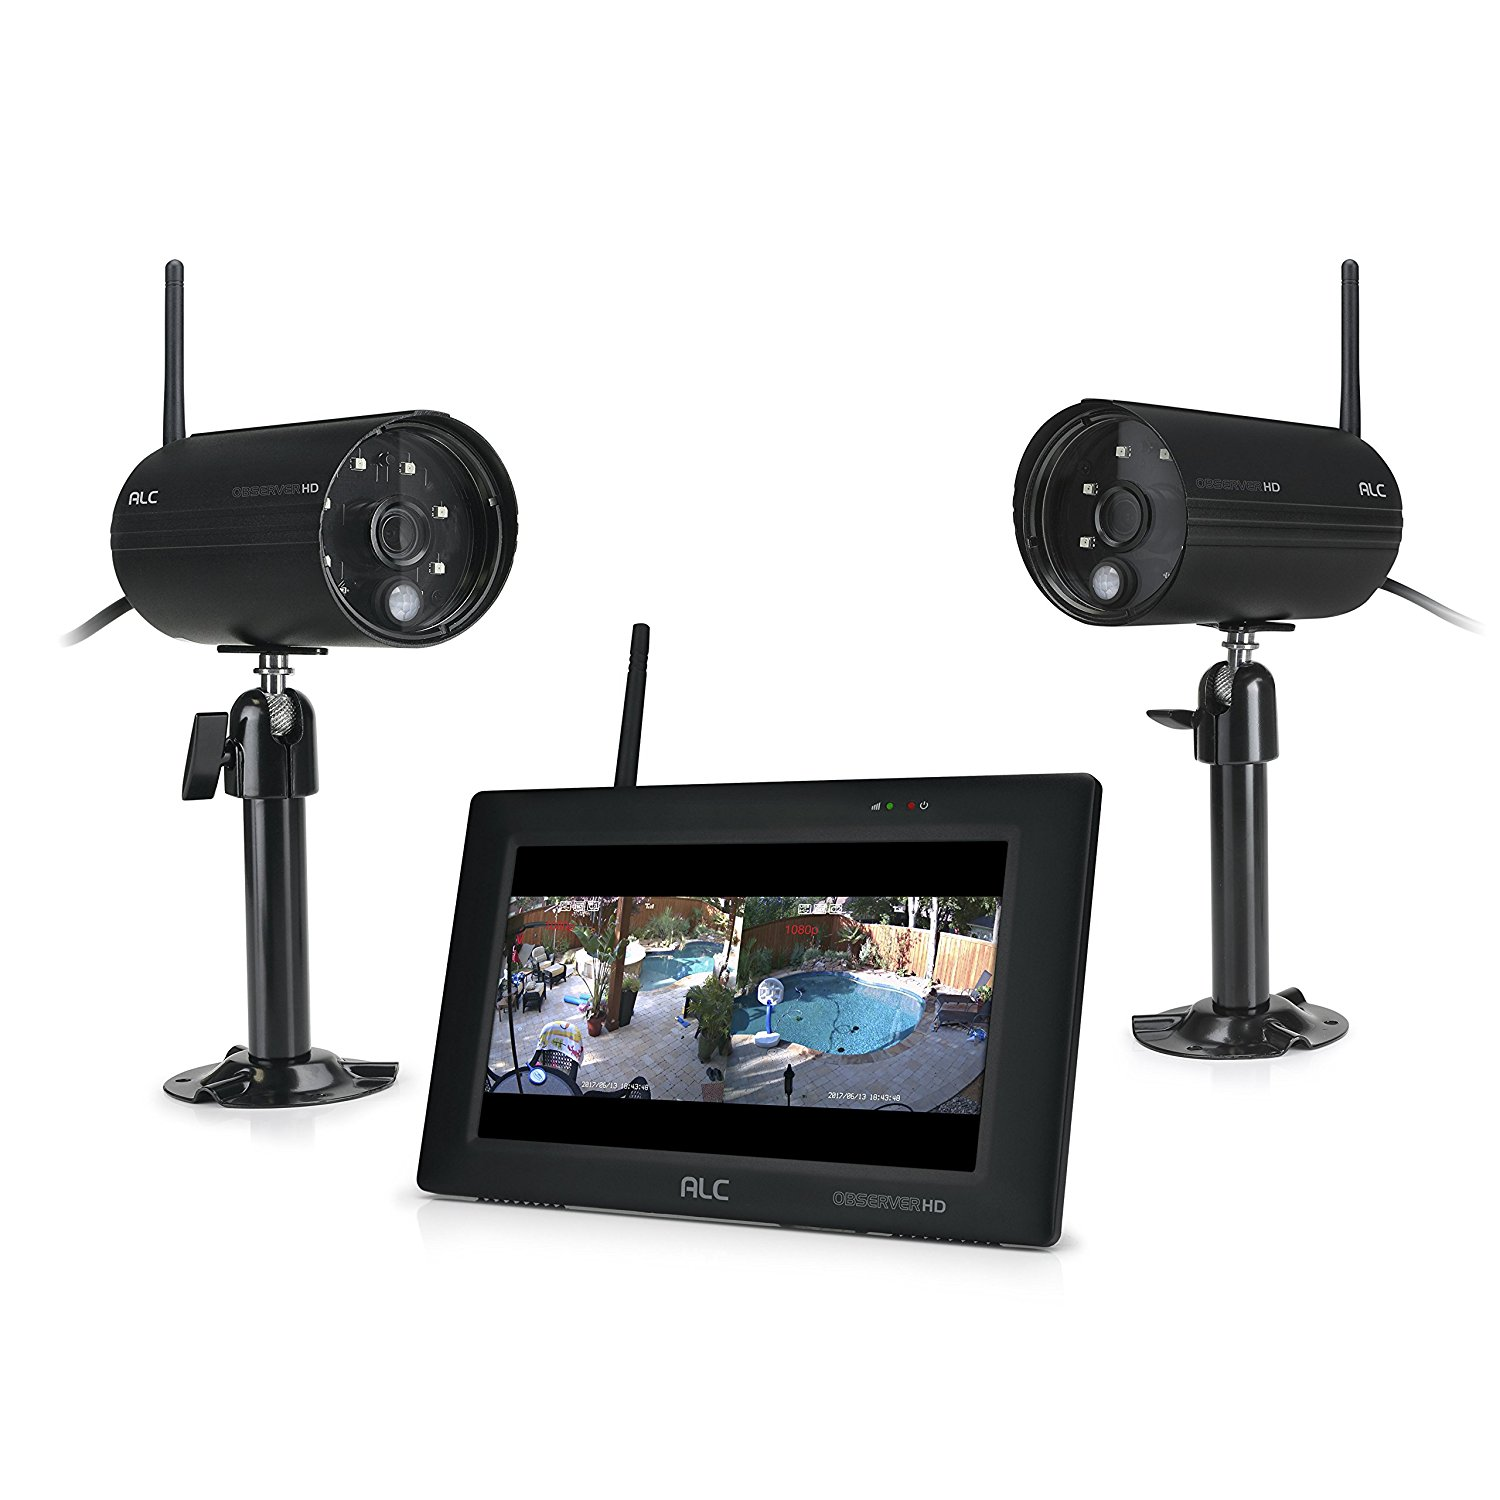 ALC 1080p Surveillance System 7� touchscreen System with 2 Cameras by ALC